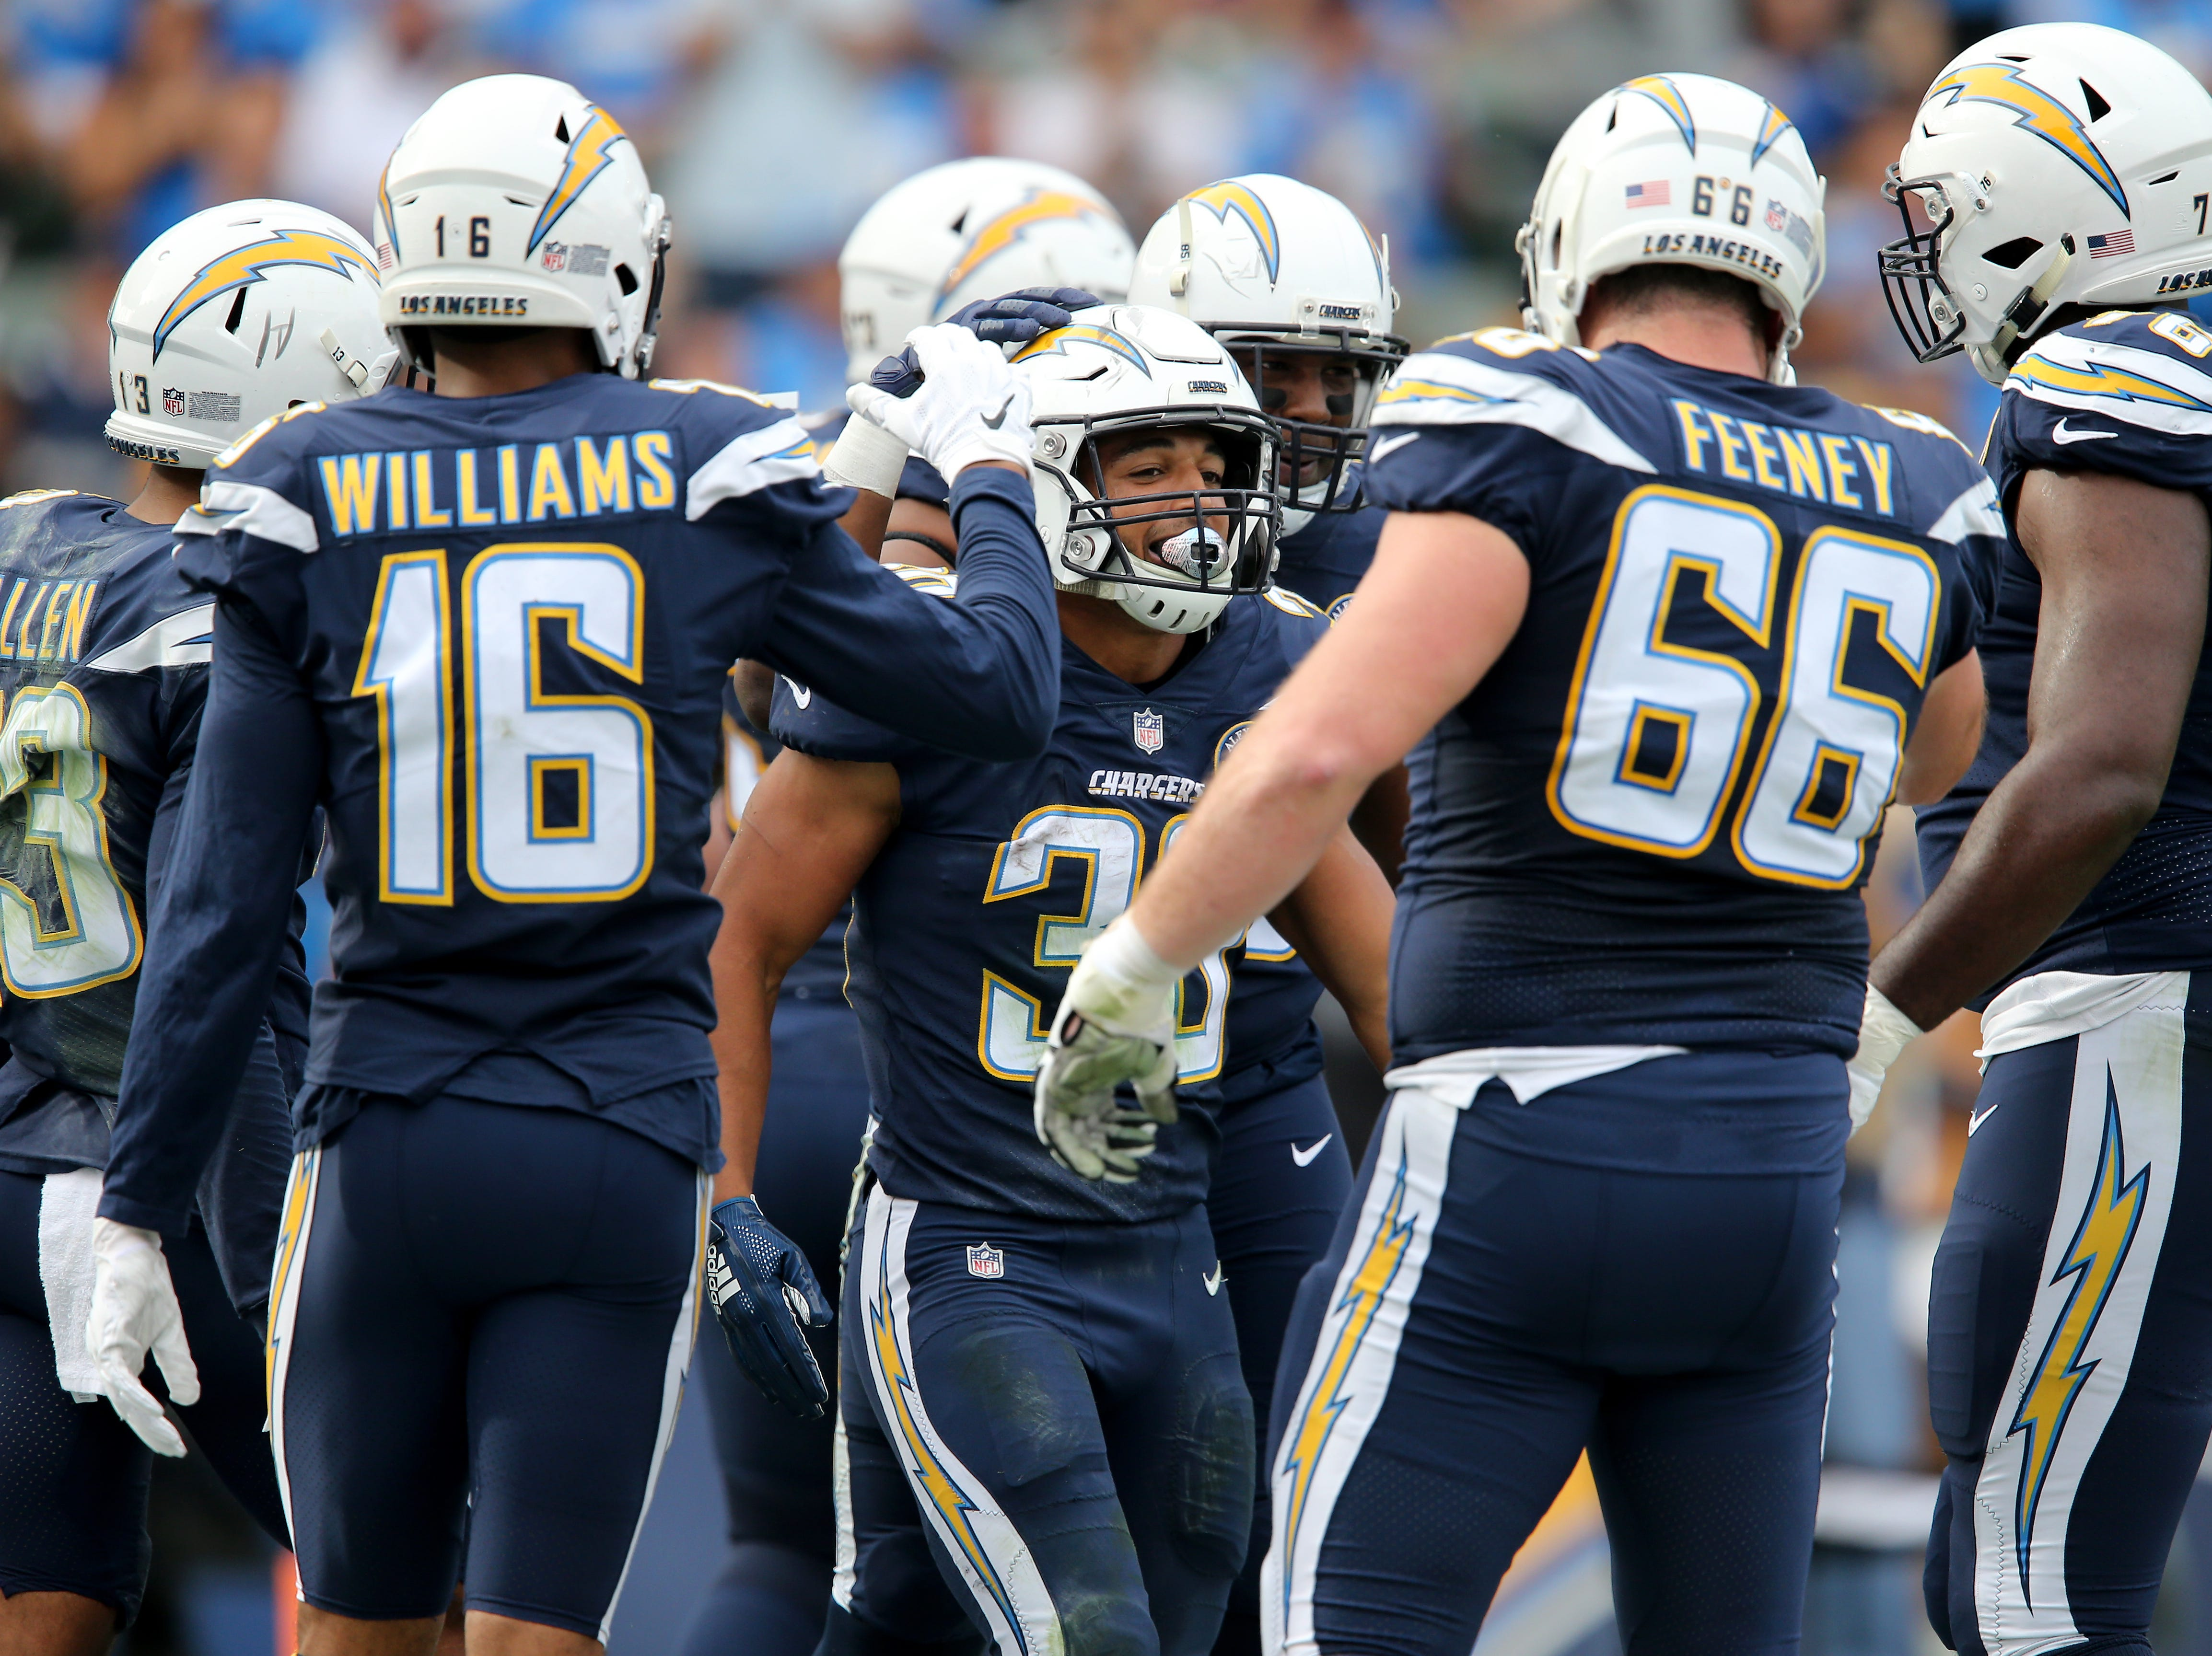 Los Angeles Chargers running back Austin Ekeler (30), center, is congratulated by teammates after scoring a touchdown in the first quarter of a Week 14 NFL football game Cincinnati Bengals, Sunday, Dec. 9, 2018, at StubHub Center in Carson, California.